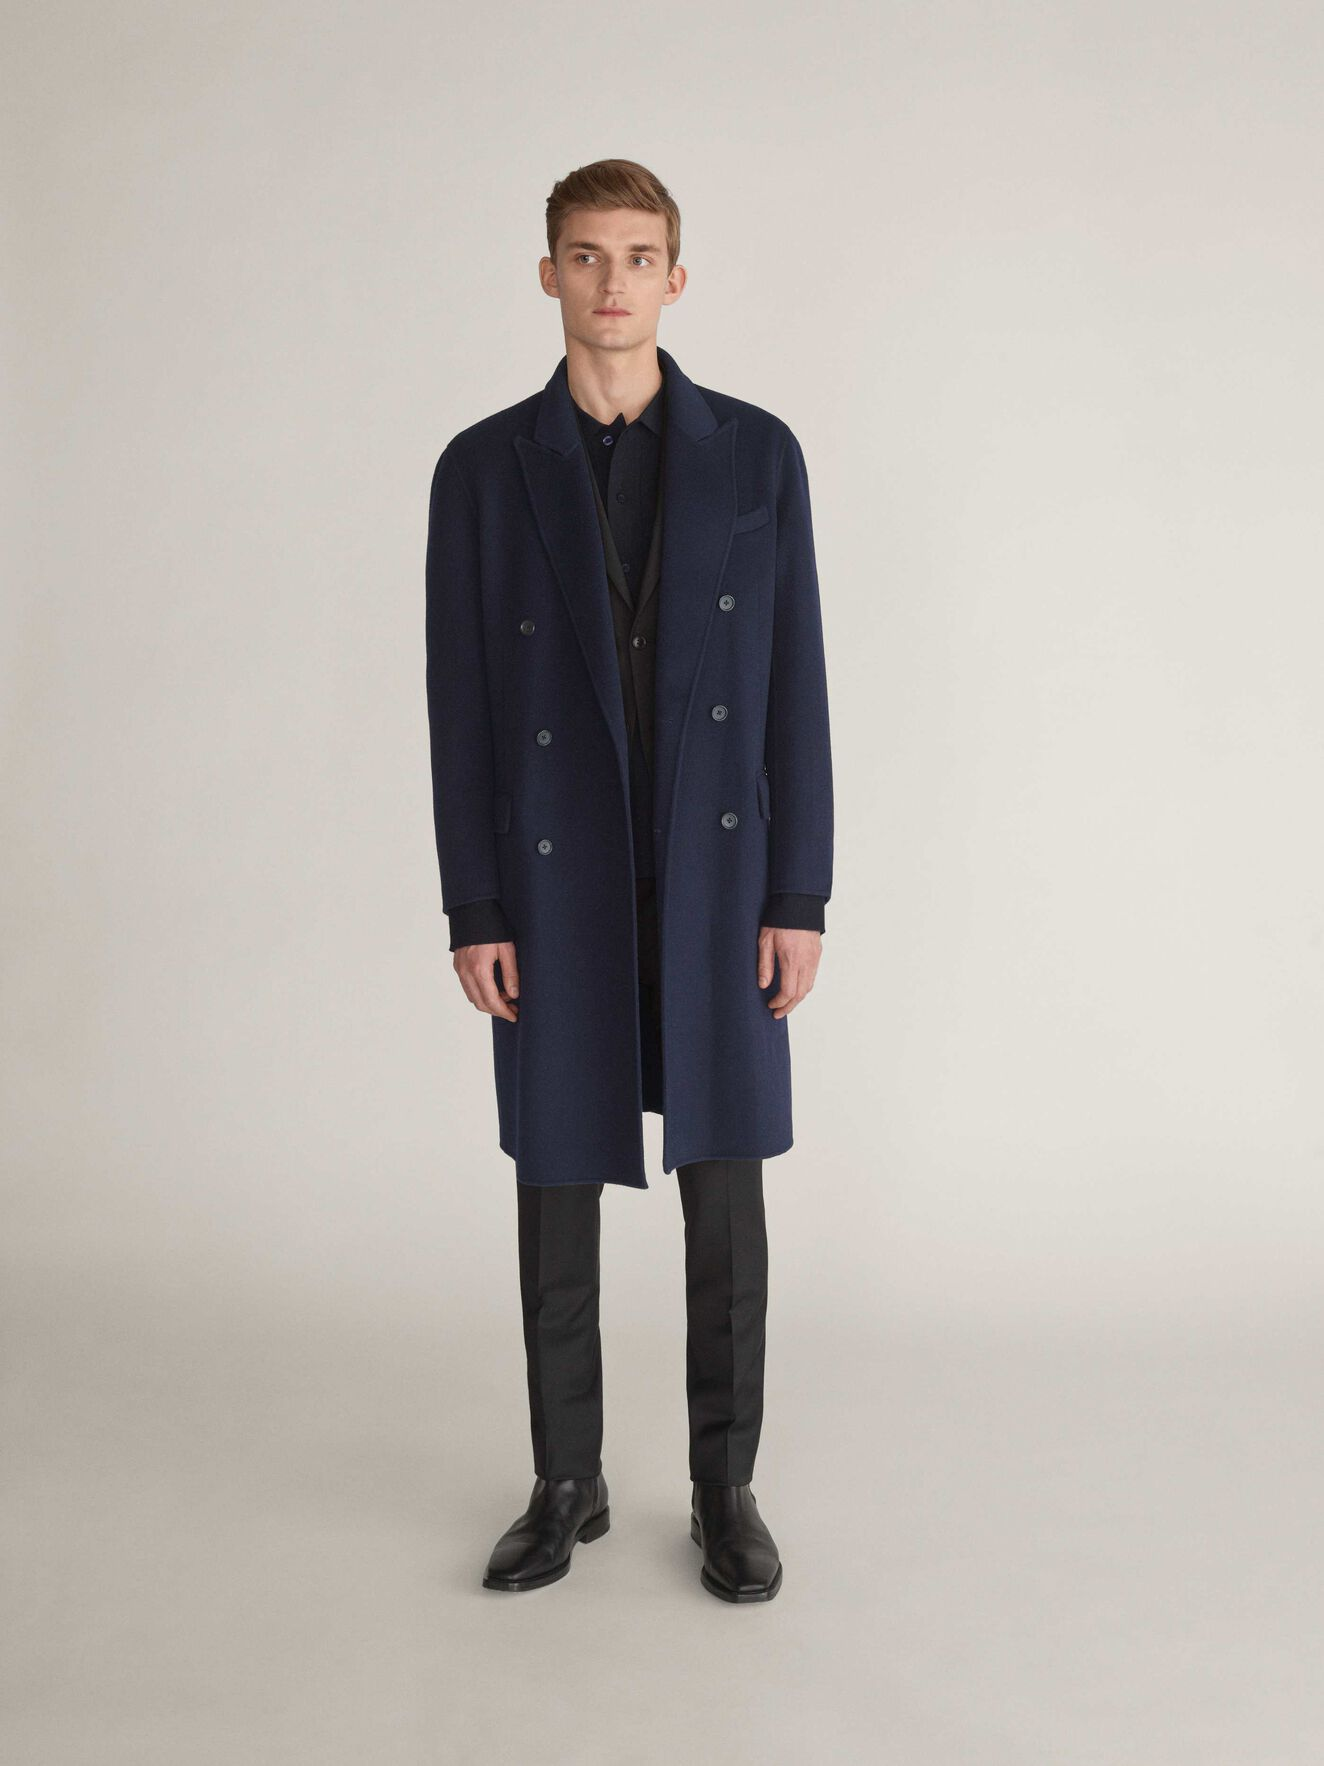 Callen Coat in Light Ink from Tiger of Sweden